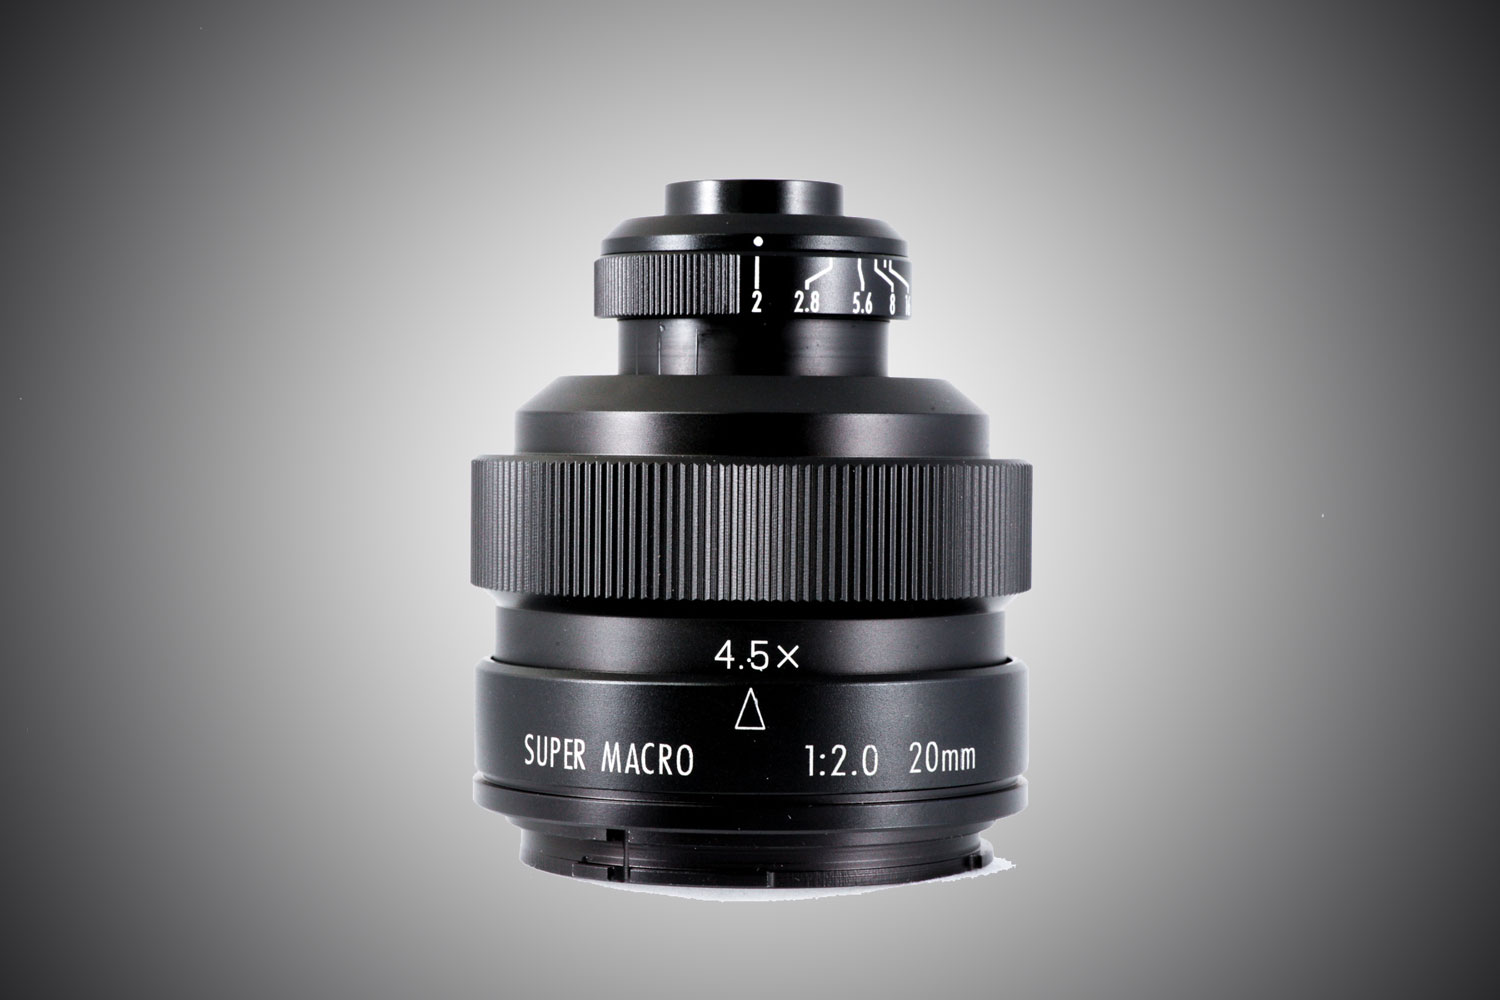 Get Super Macro Photos With The Zy Optics Affordable